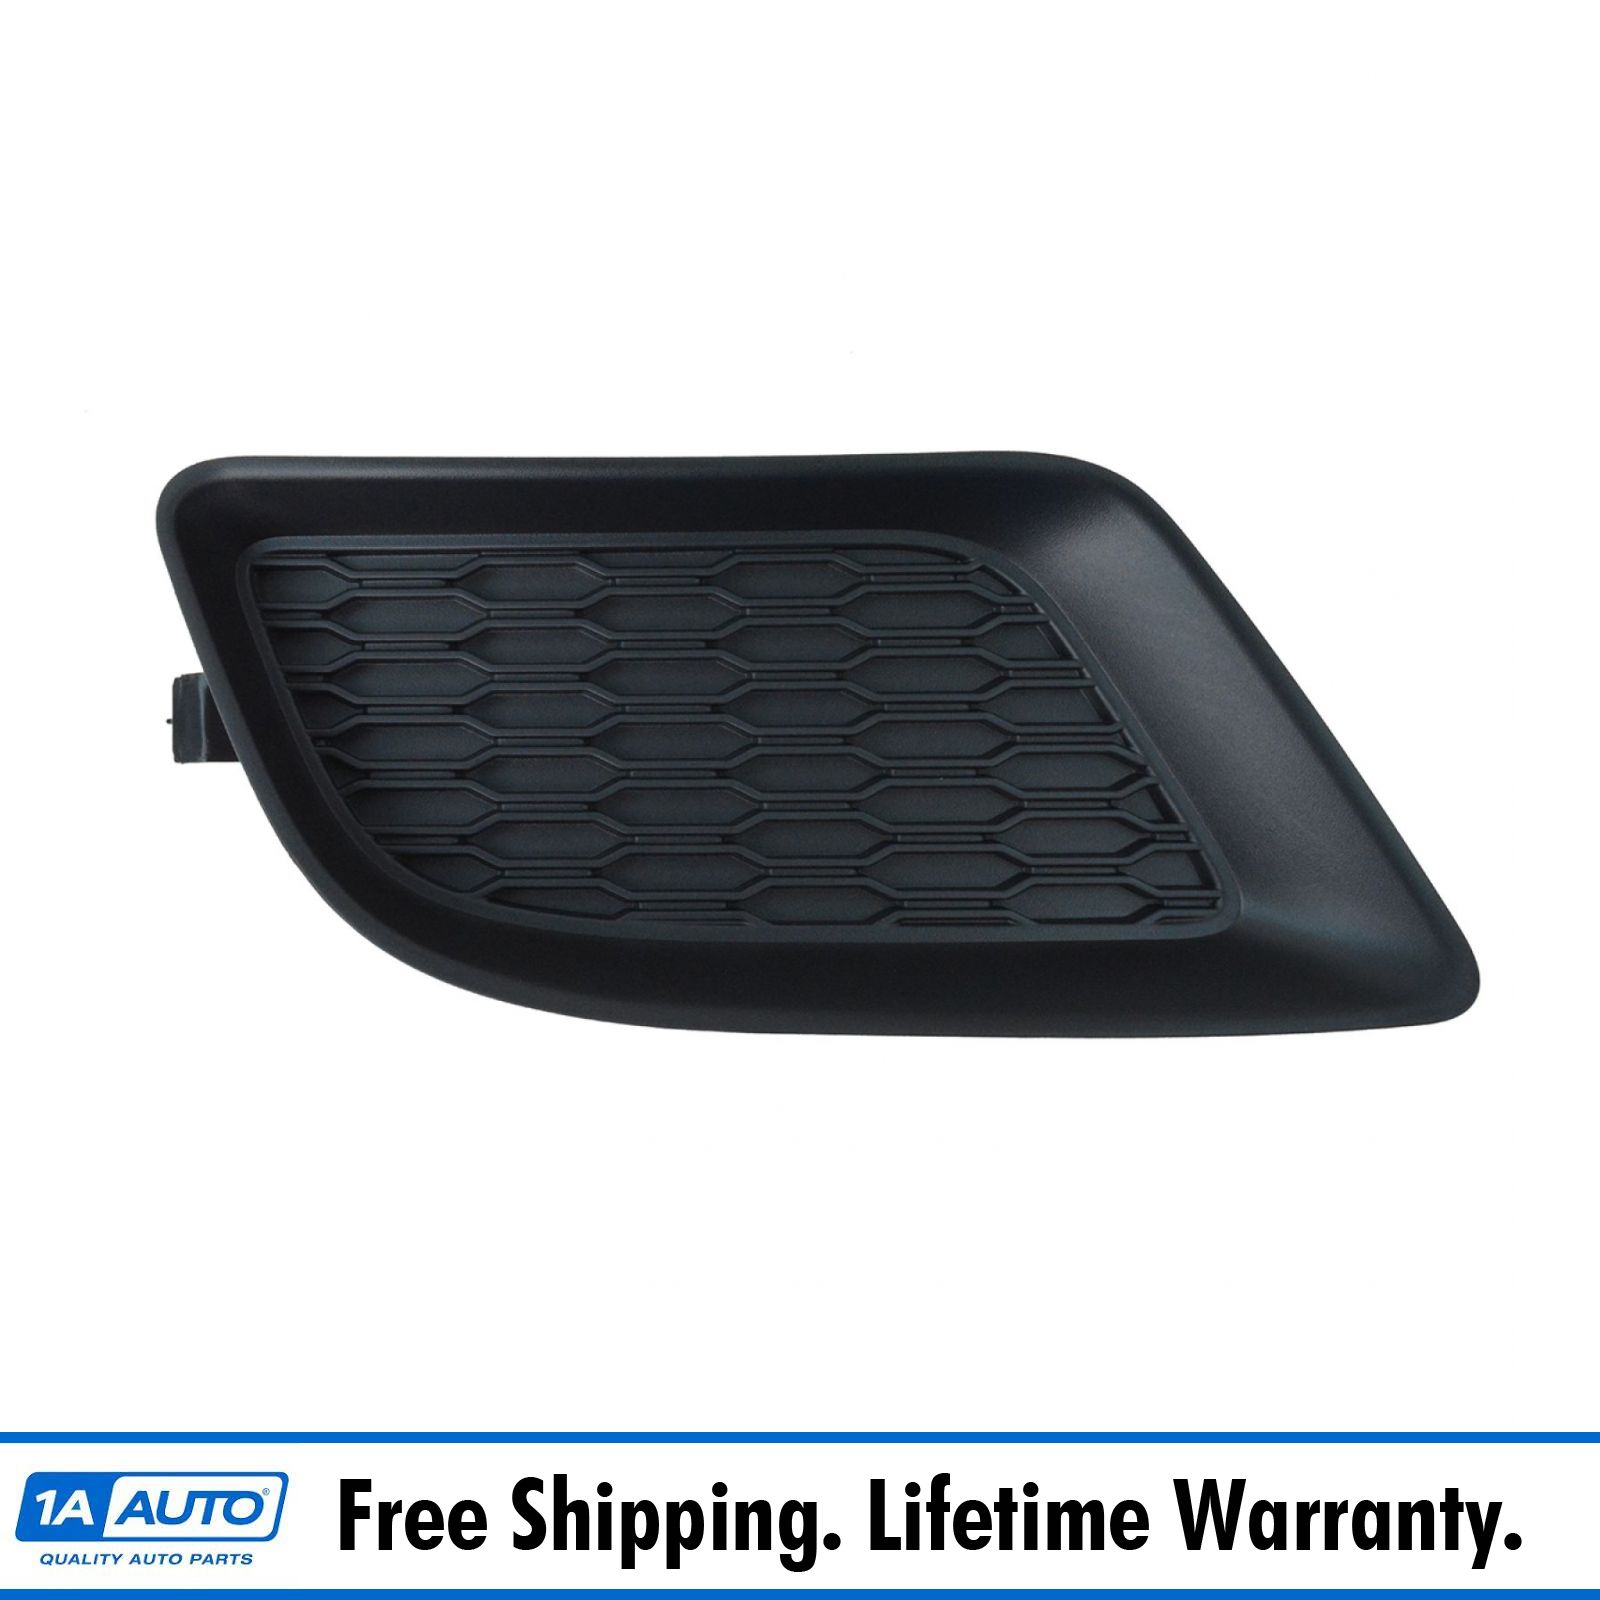 FOR LISTED 2011-14 CHARGER Fog Hole Filler Panel RH NEW Front Bumper Insert